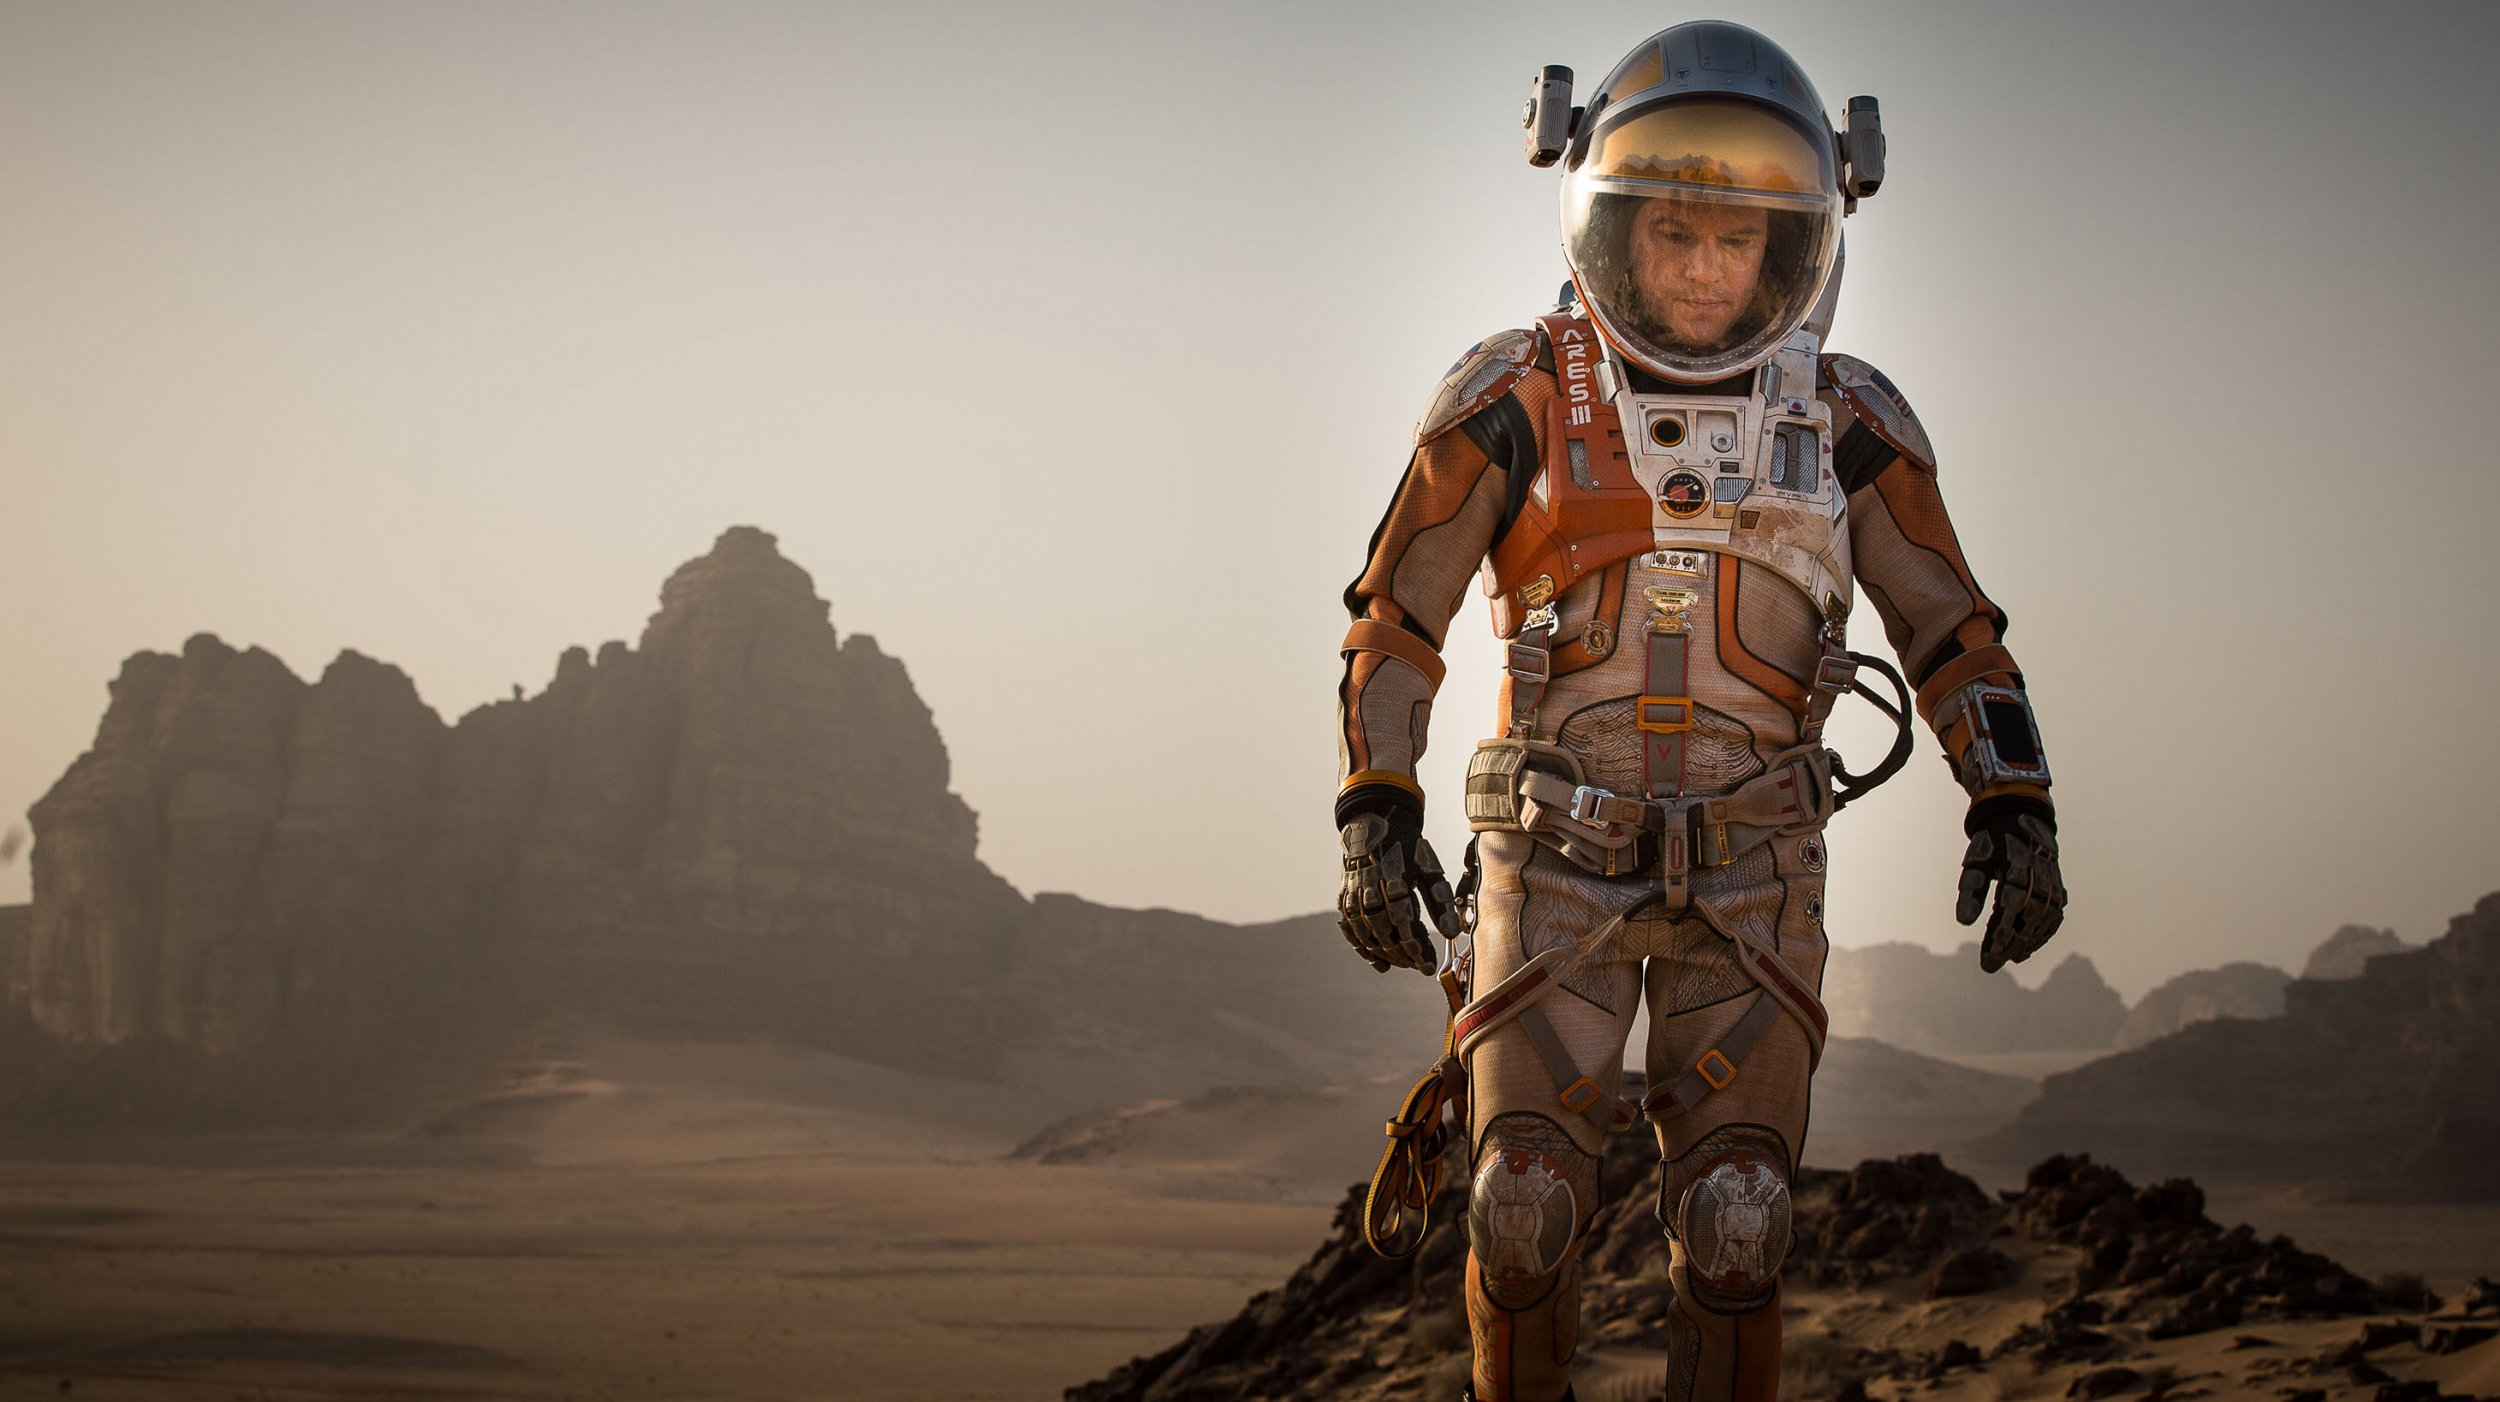 10_02_TheMartian_01